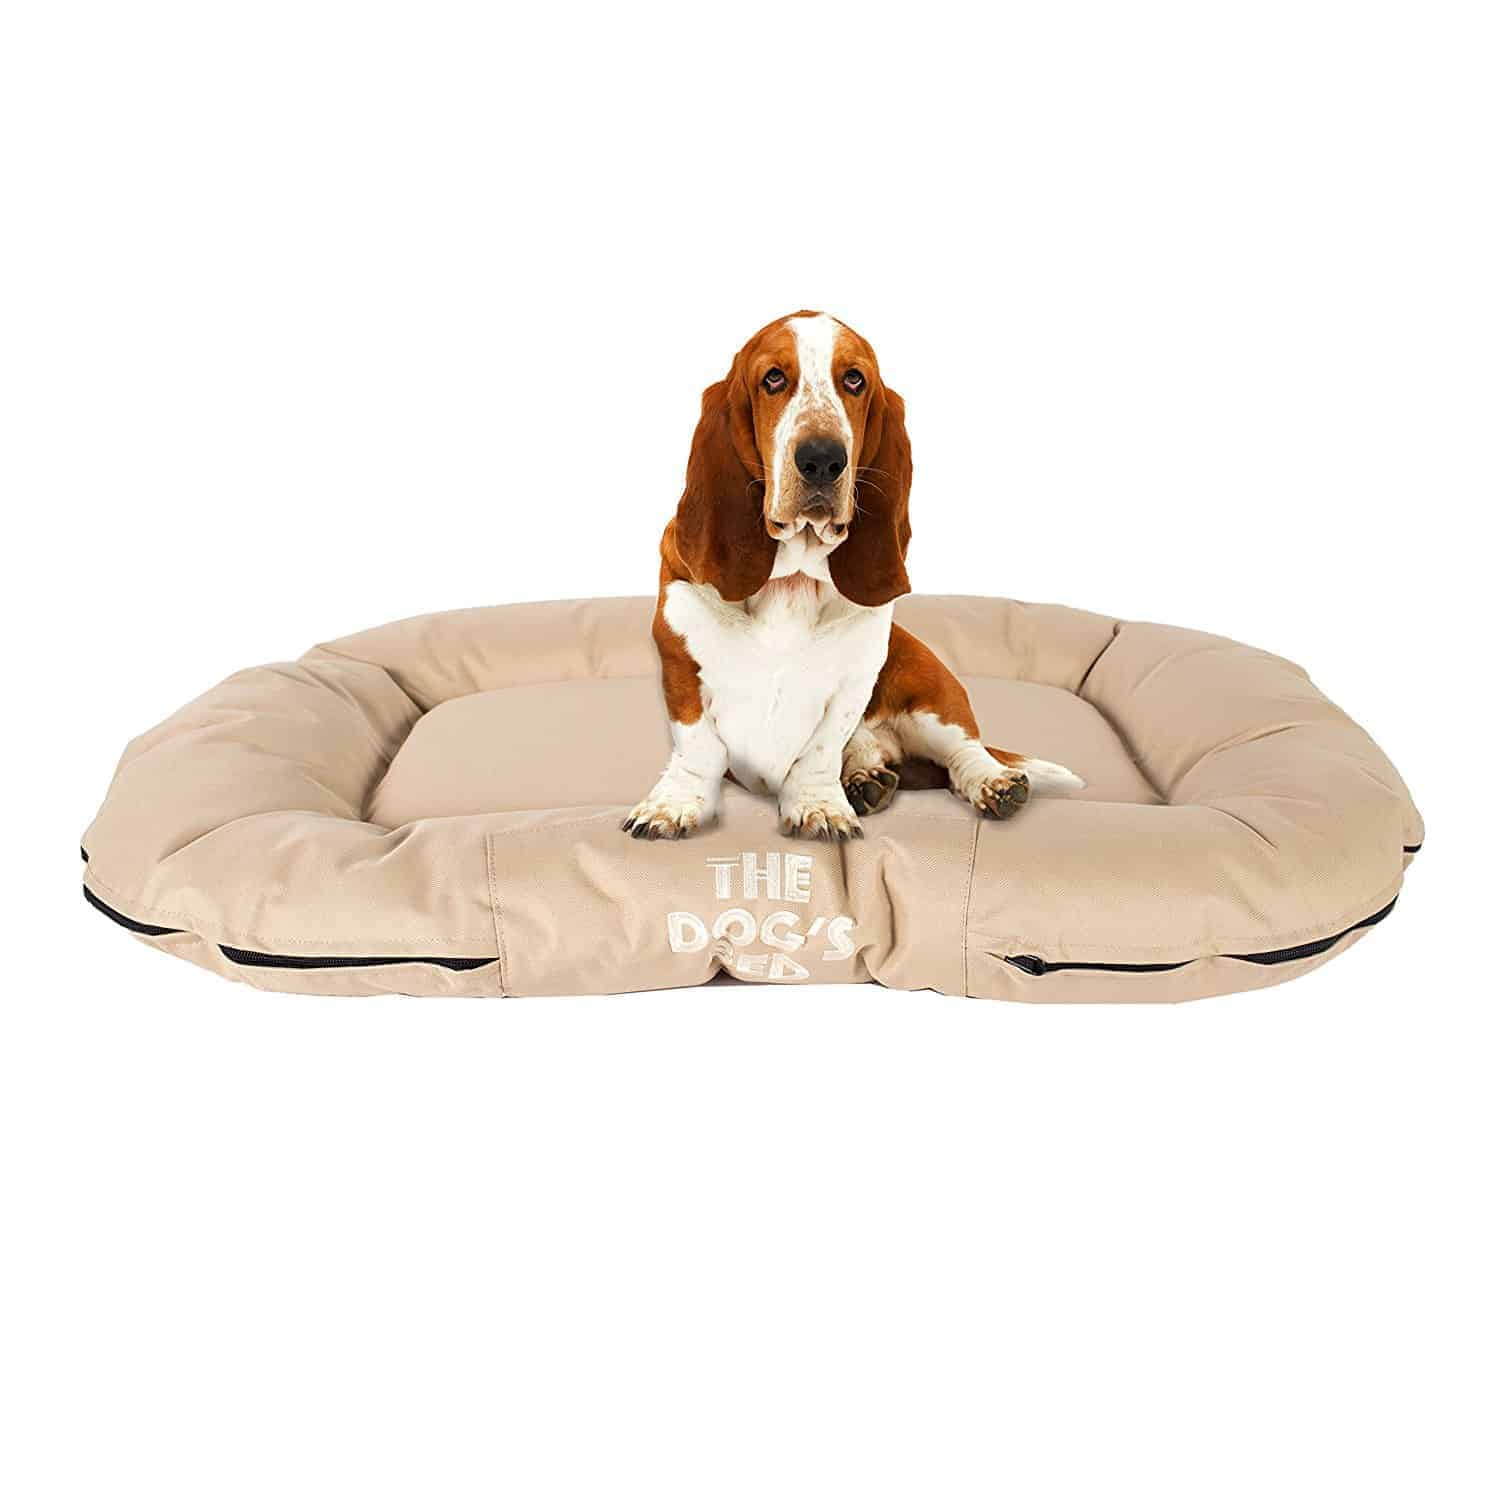 Best Chew Proof Dog Bed UK – The Dog's Balls